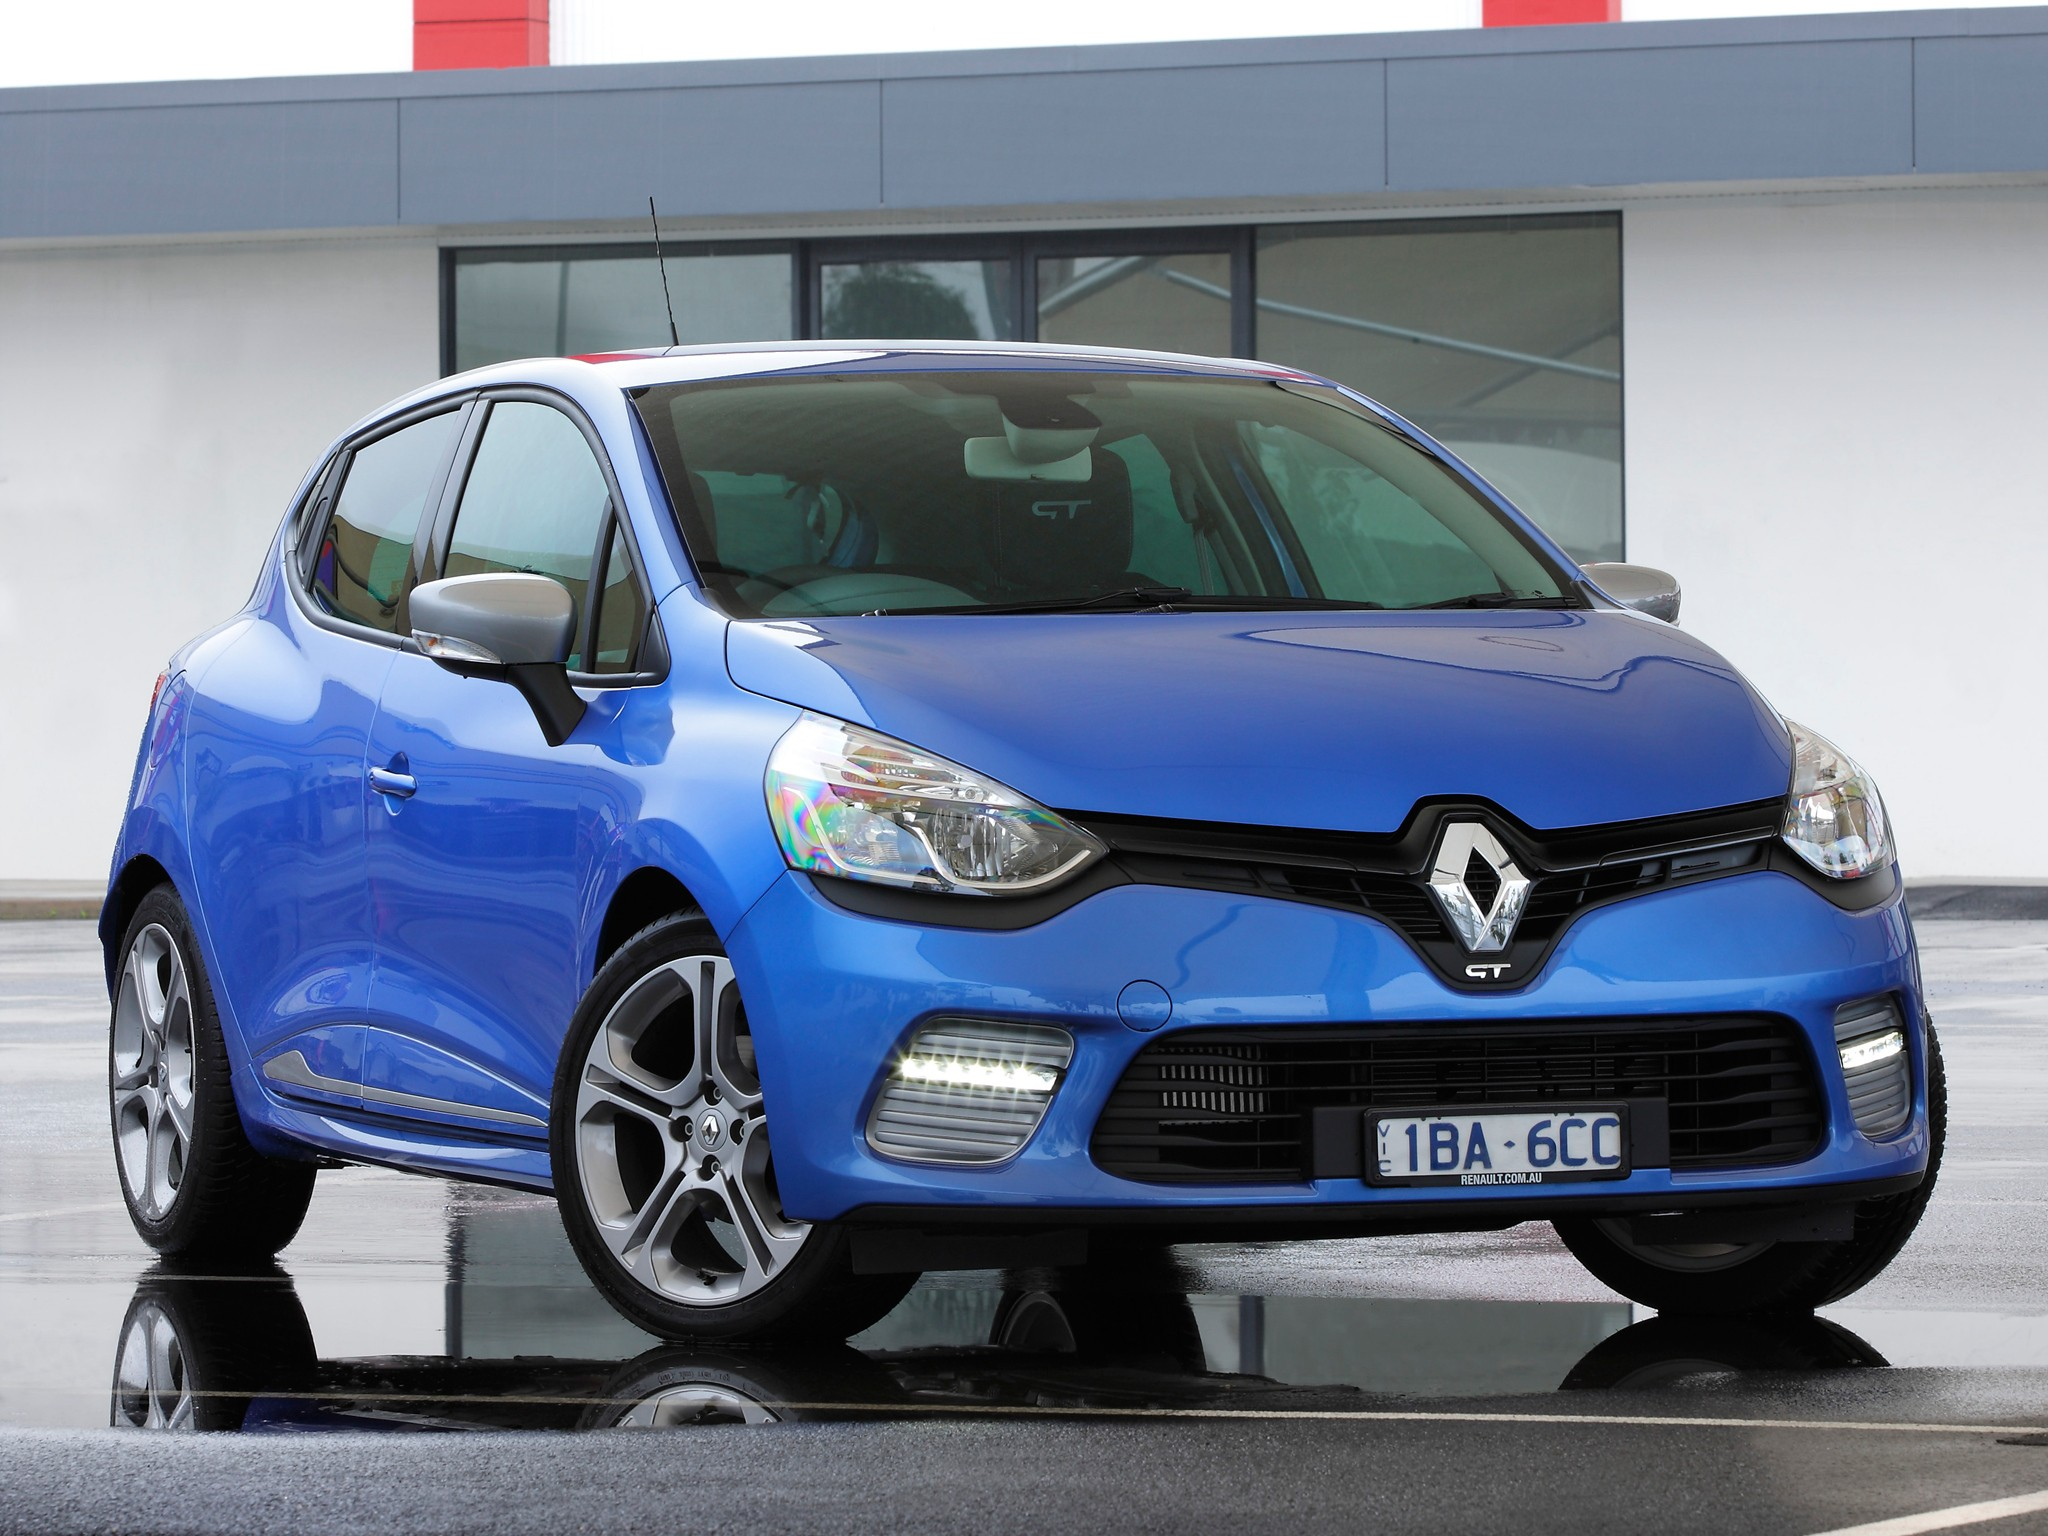 renault clio gt 5 doors 2013 2014 2015 2016 2017 autoevolution. Black Bedroom Furniture Sets. Home Design Ideas